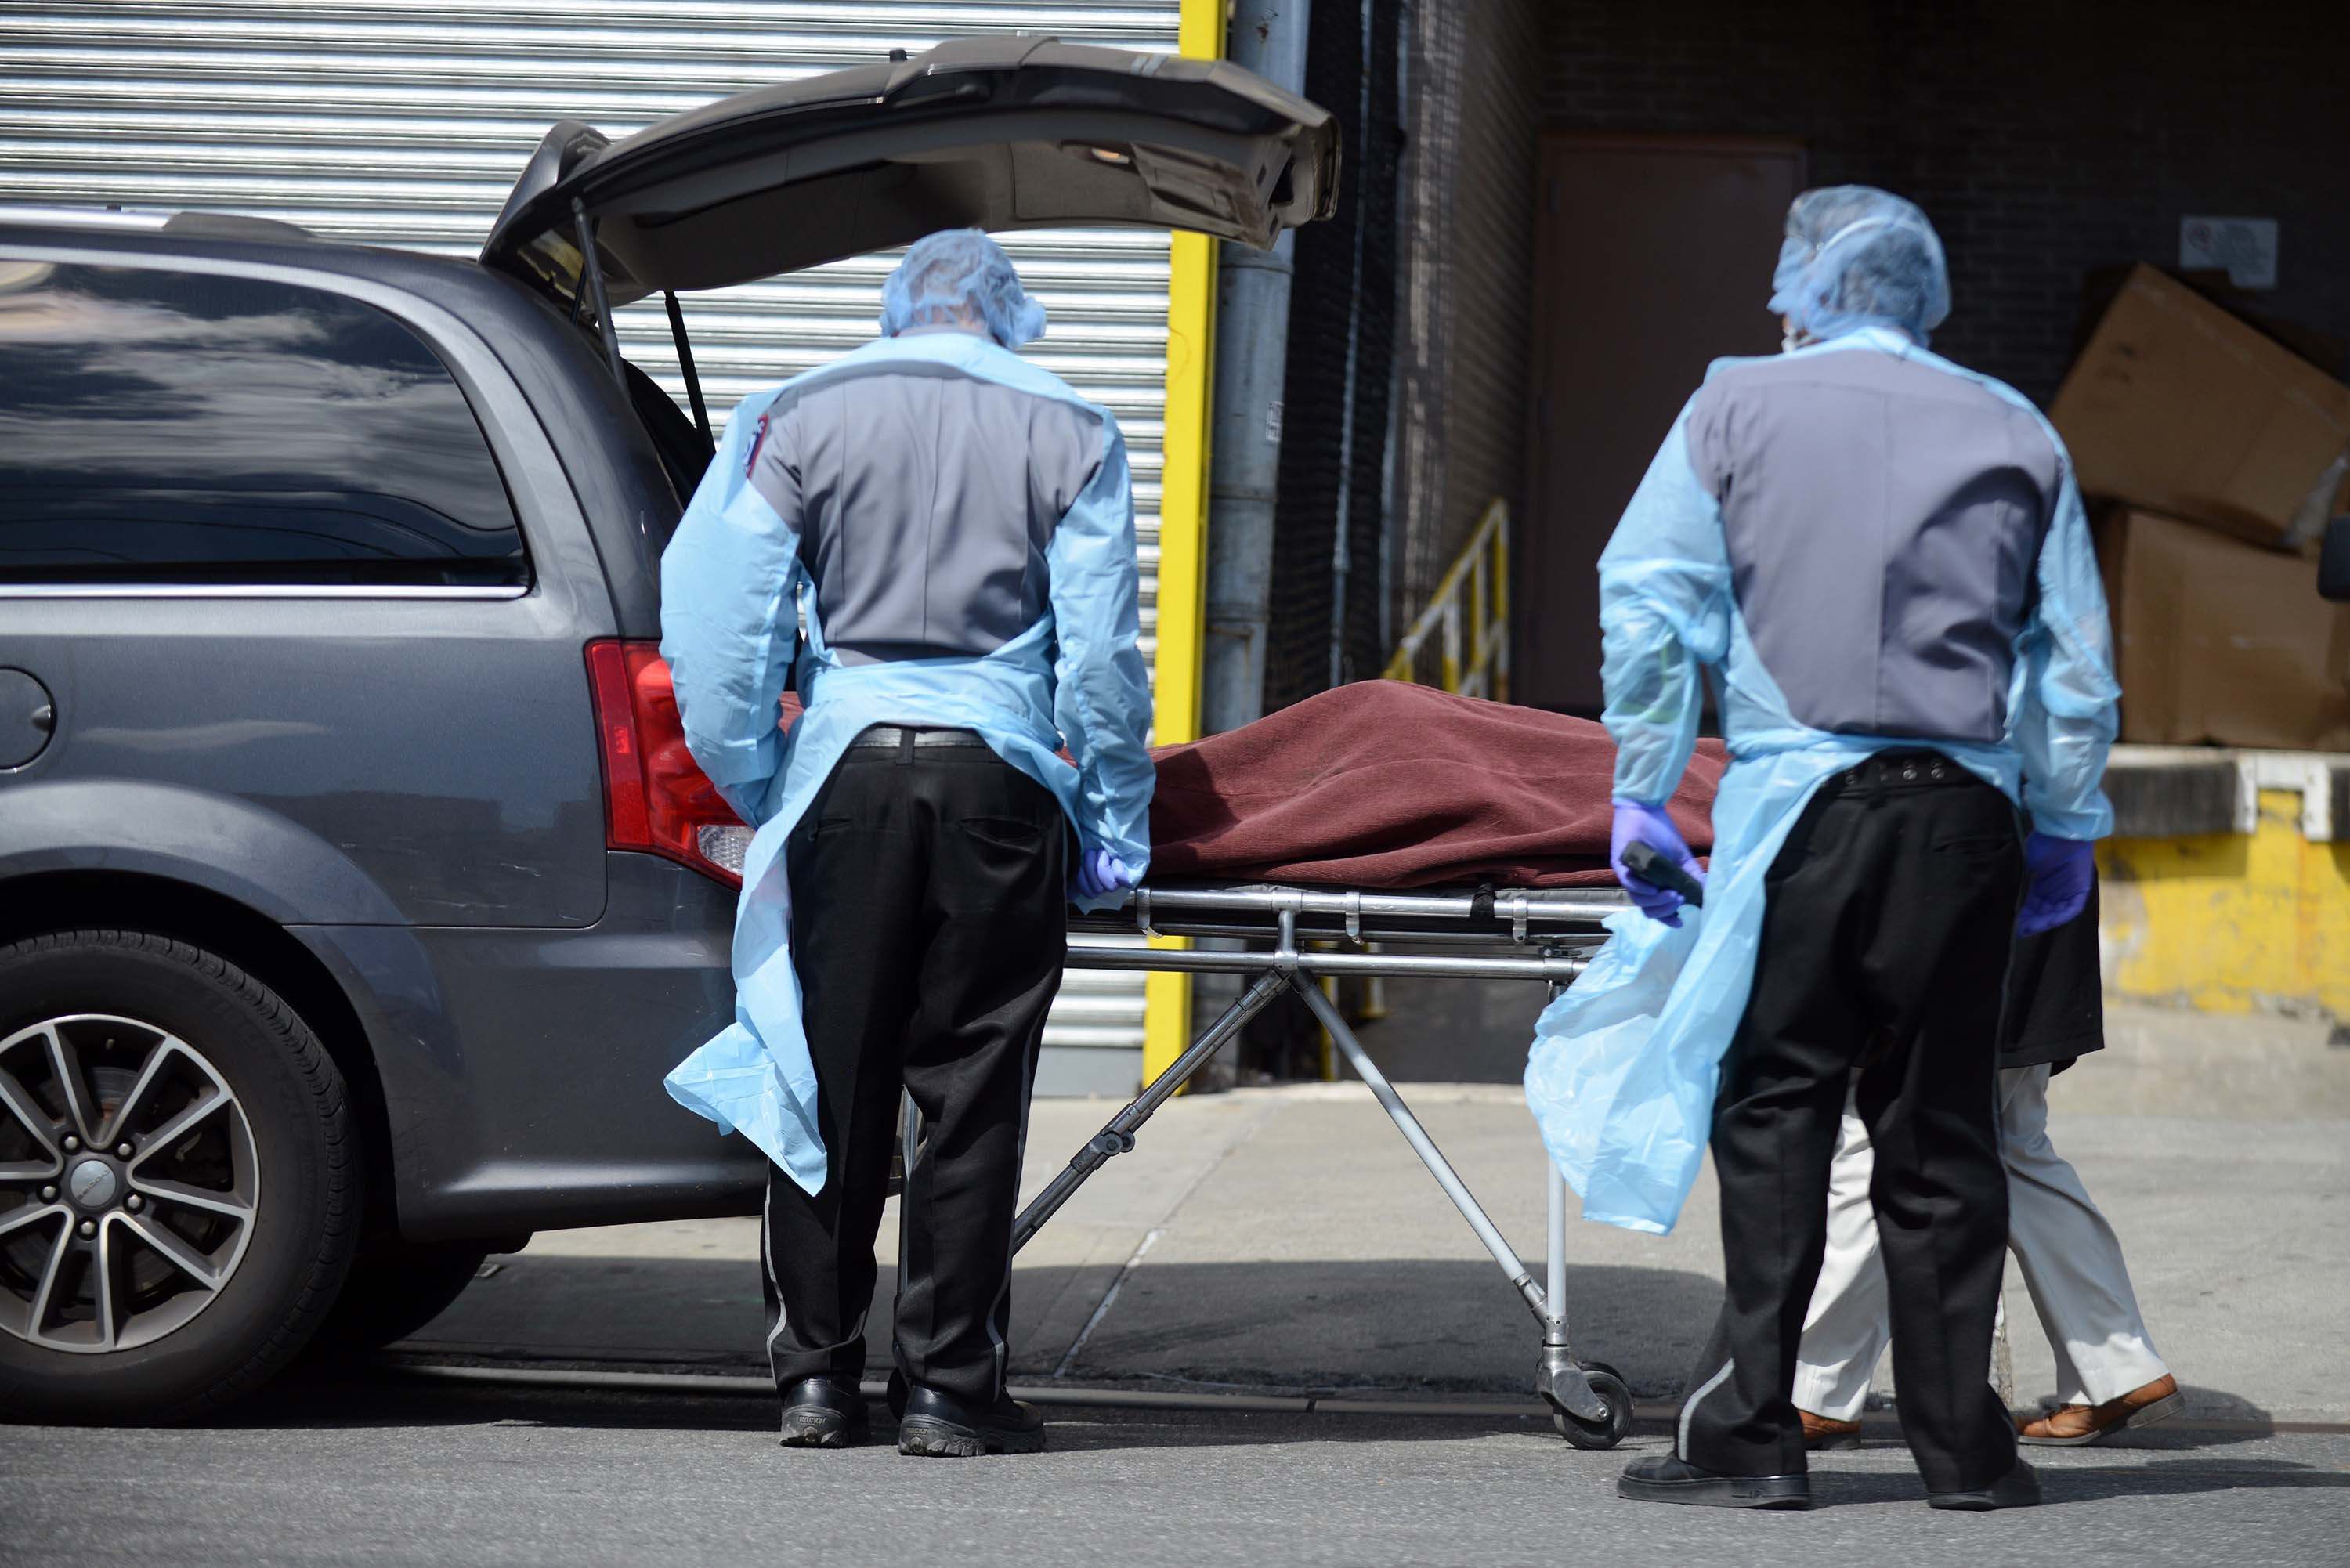 A deceased coronavirus patient is loaded into a waiting funeral home van outside Wyckoff Heights hospital in Brooklyn, New York, on April 2.